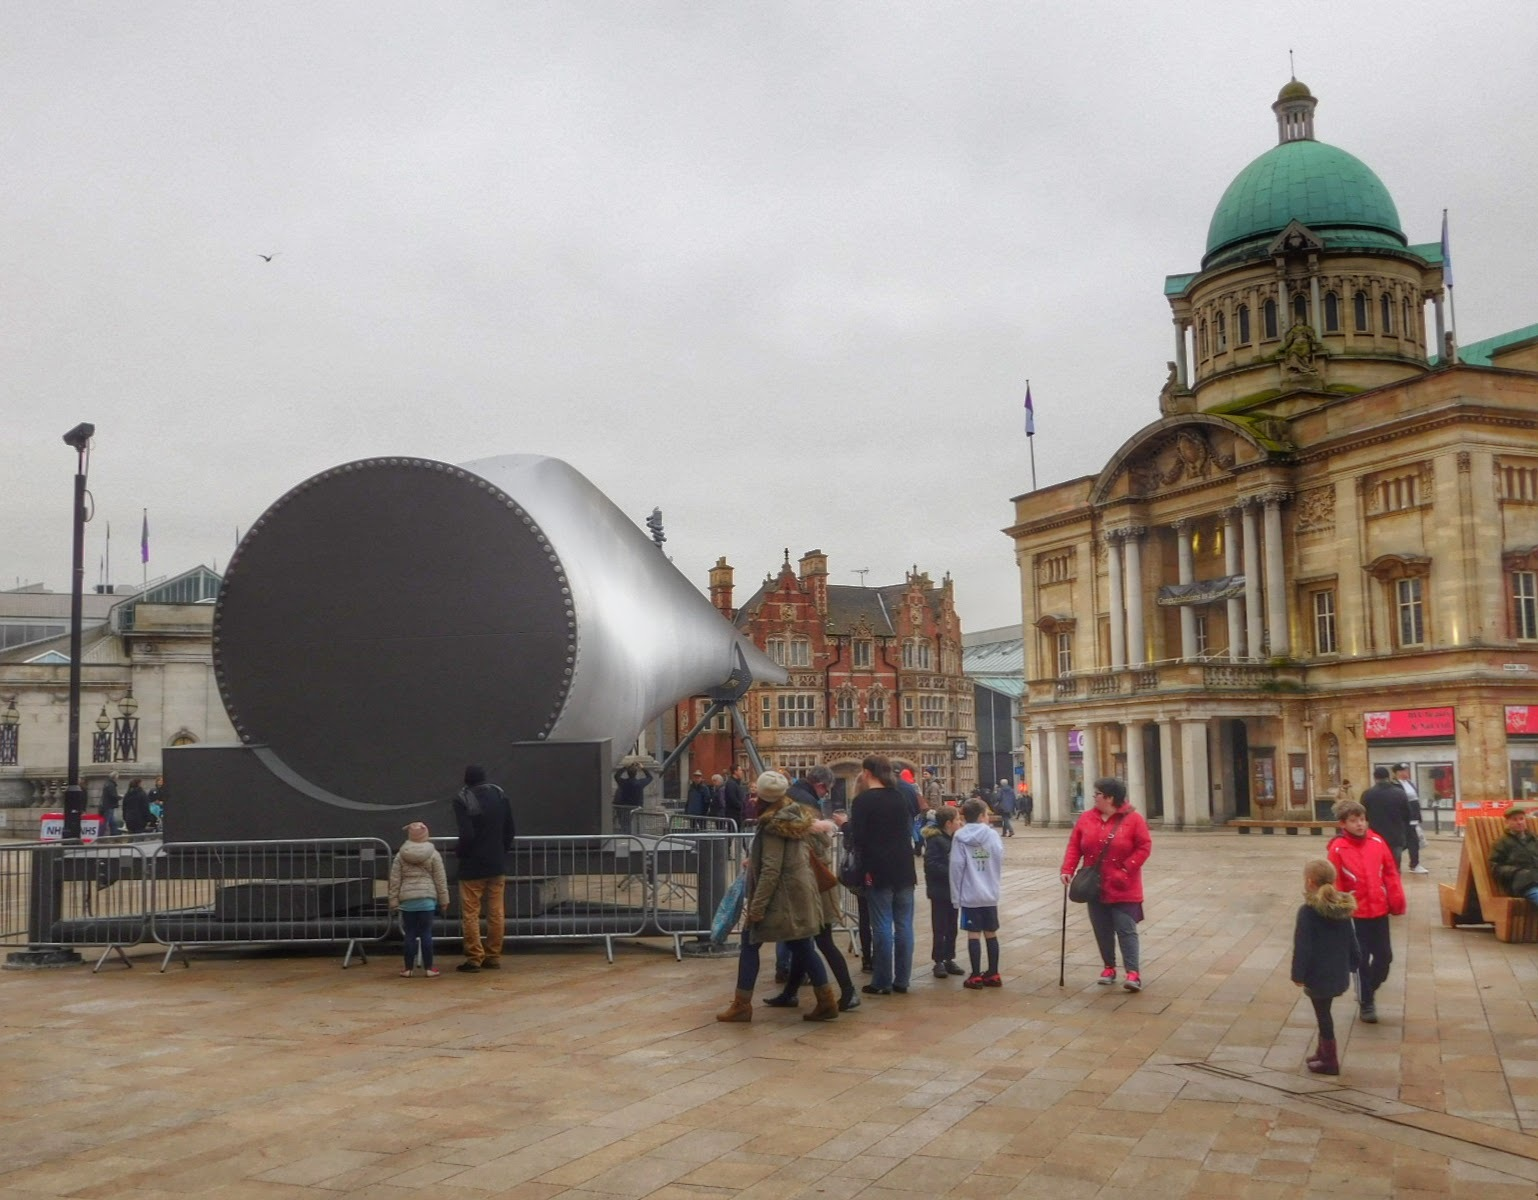 The Blade - HULL CITY OF CULTURE, UK by Sheila Button